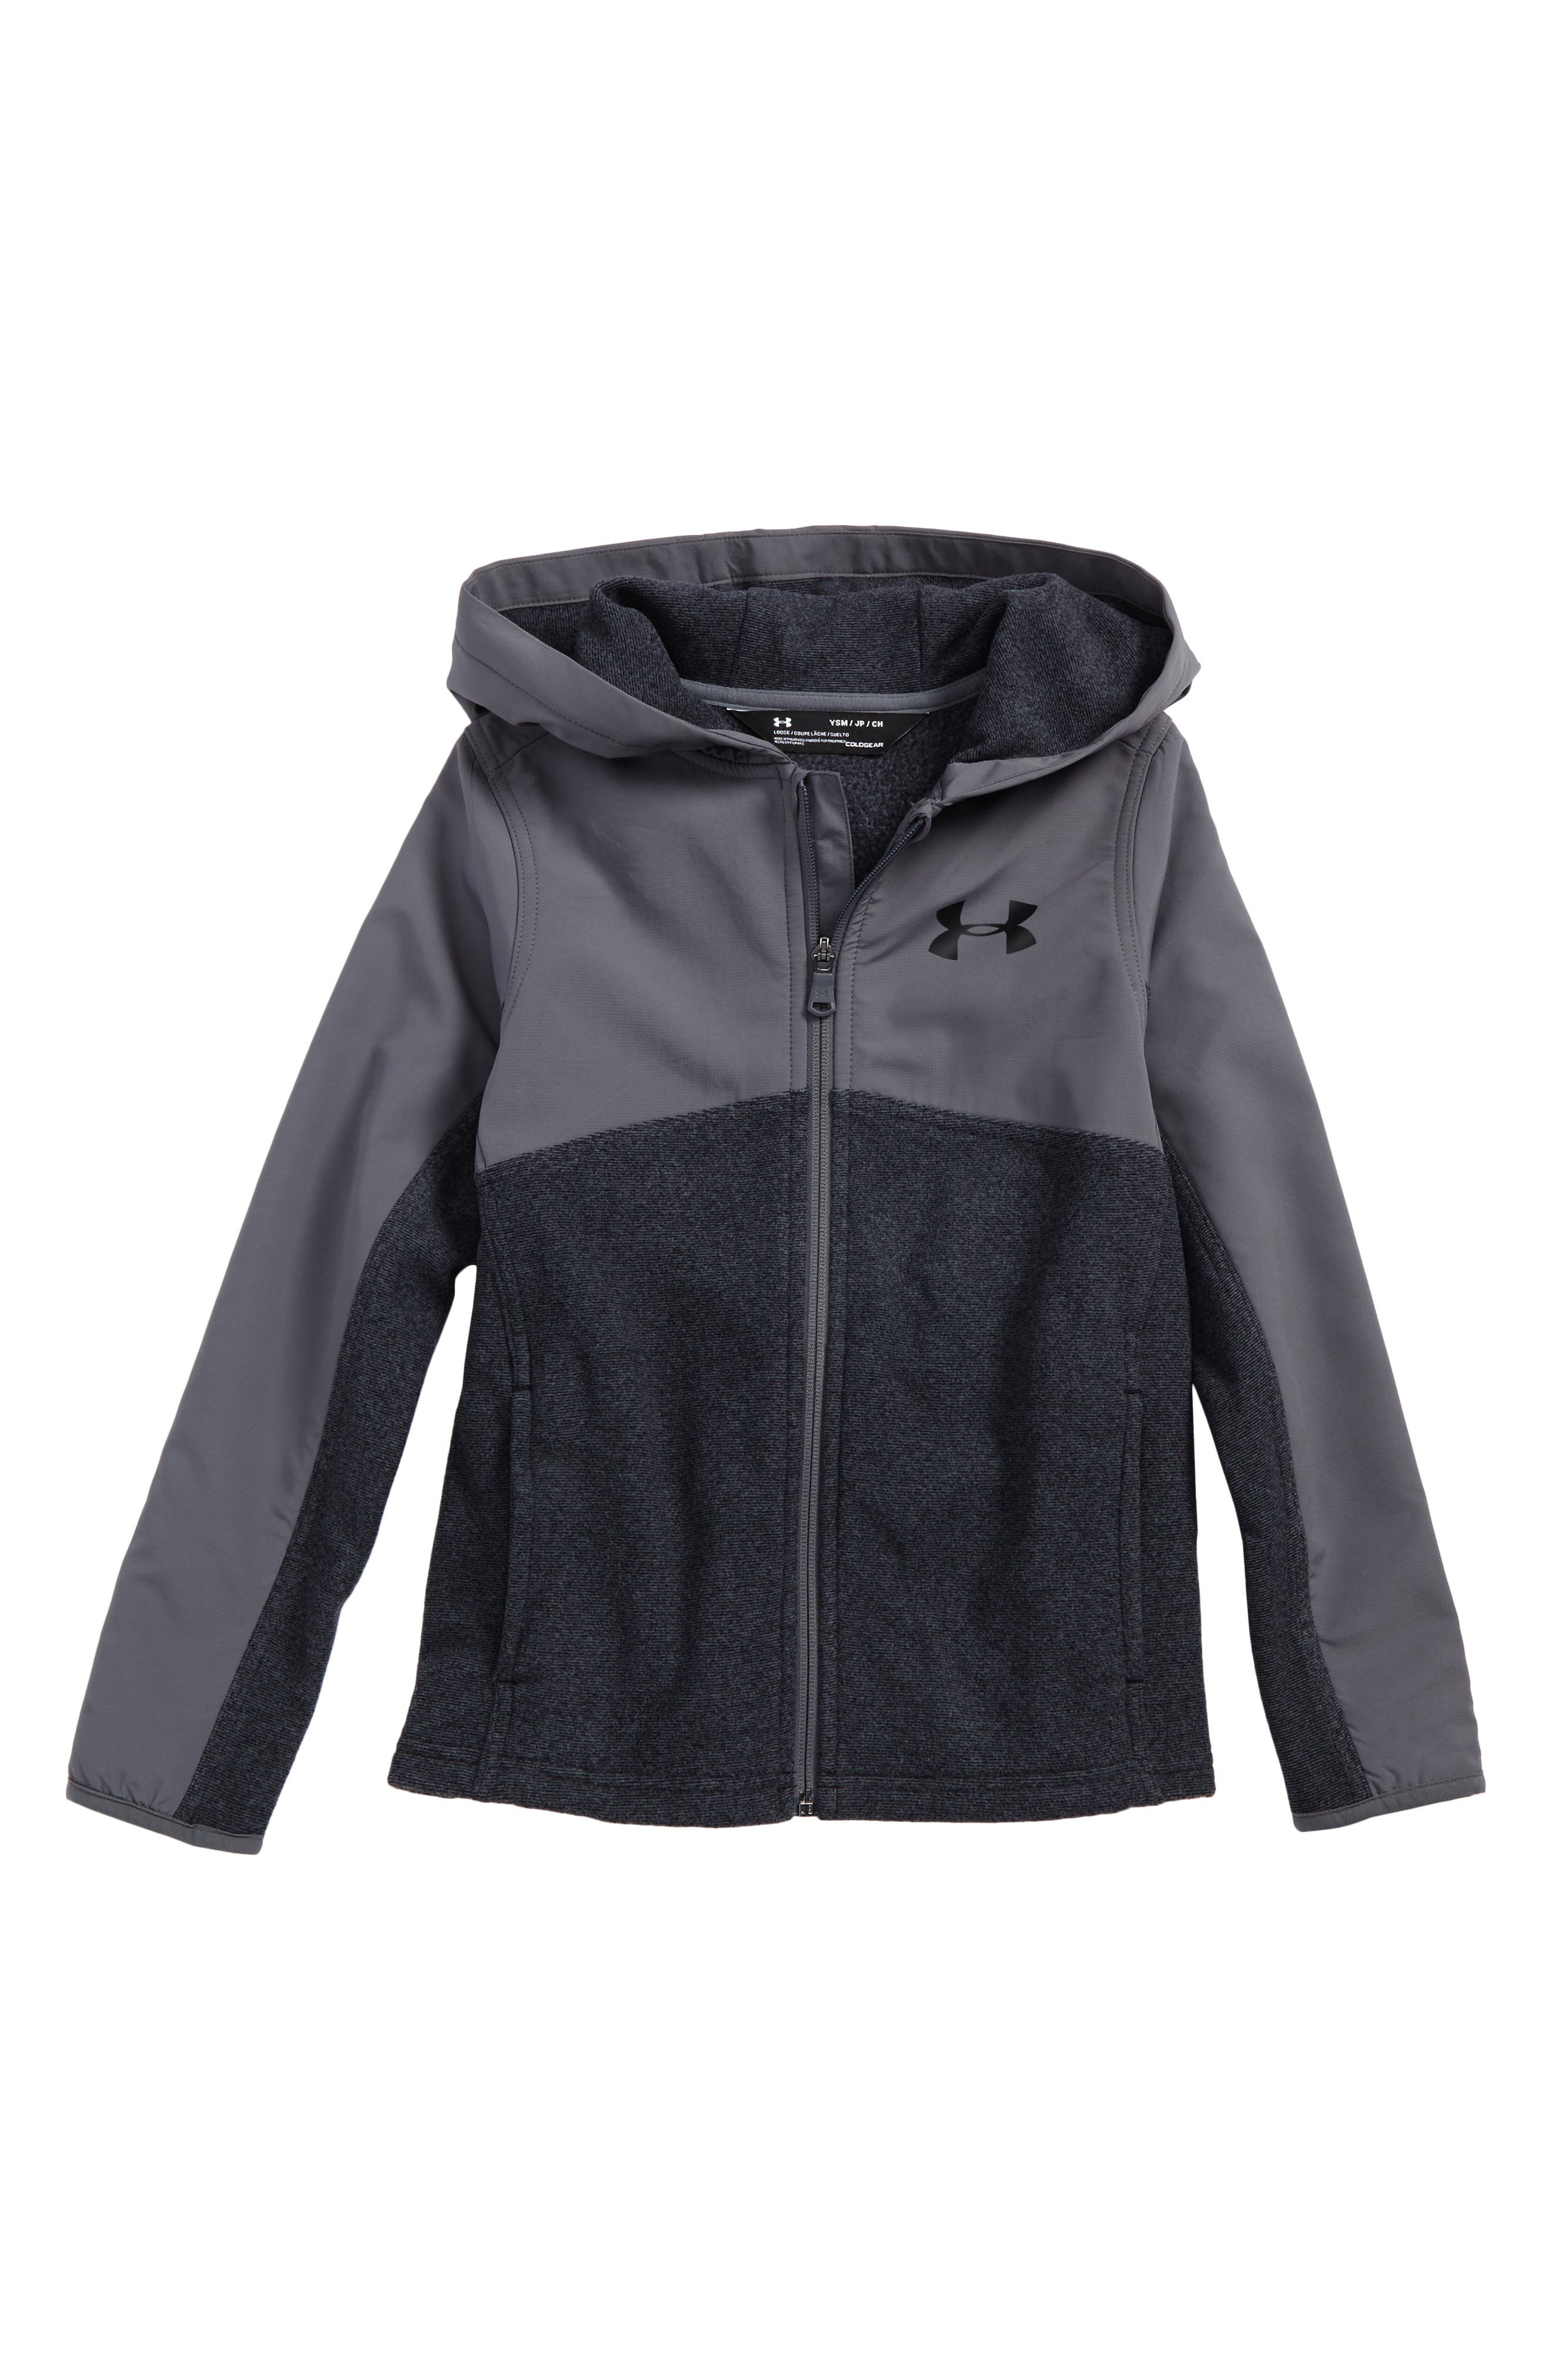 Under Armor Phenom ColdGear<sup>®</sup> Zip Hoodie,                             Main thumbnail 1, color,